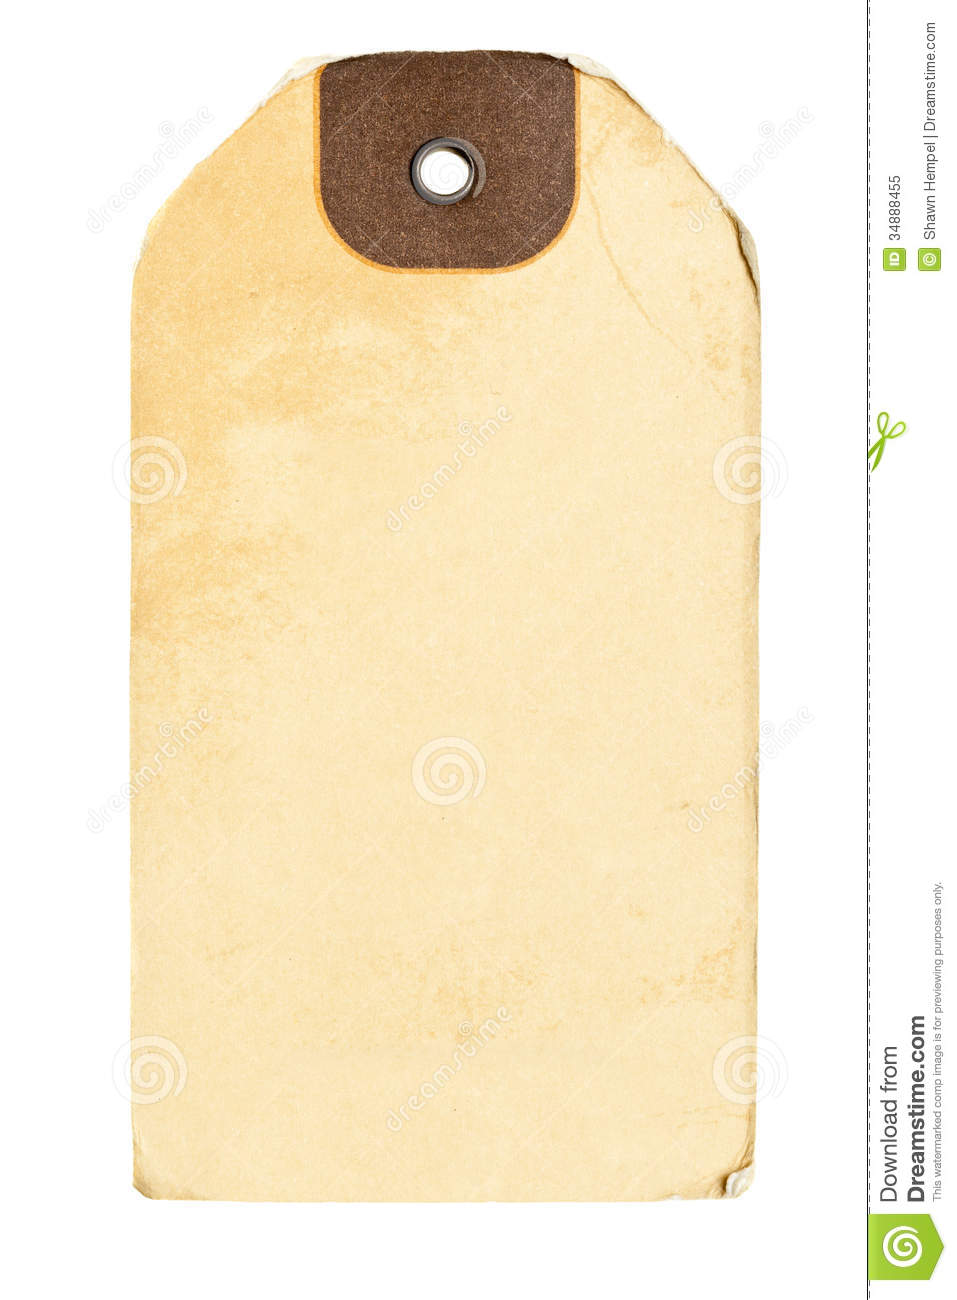 Vintage Lable Royalty Free Stock Photo Image 34888455